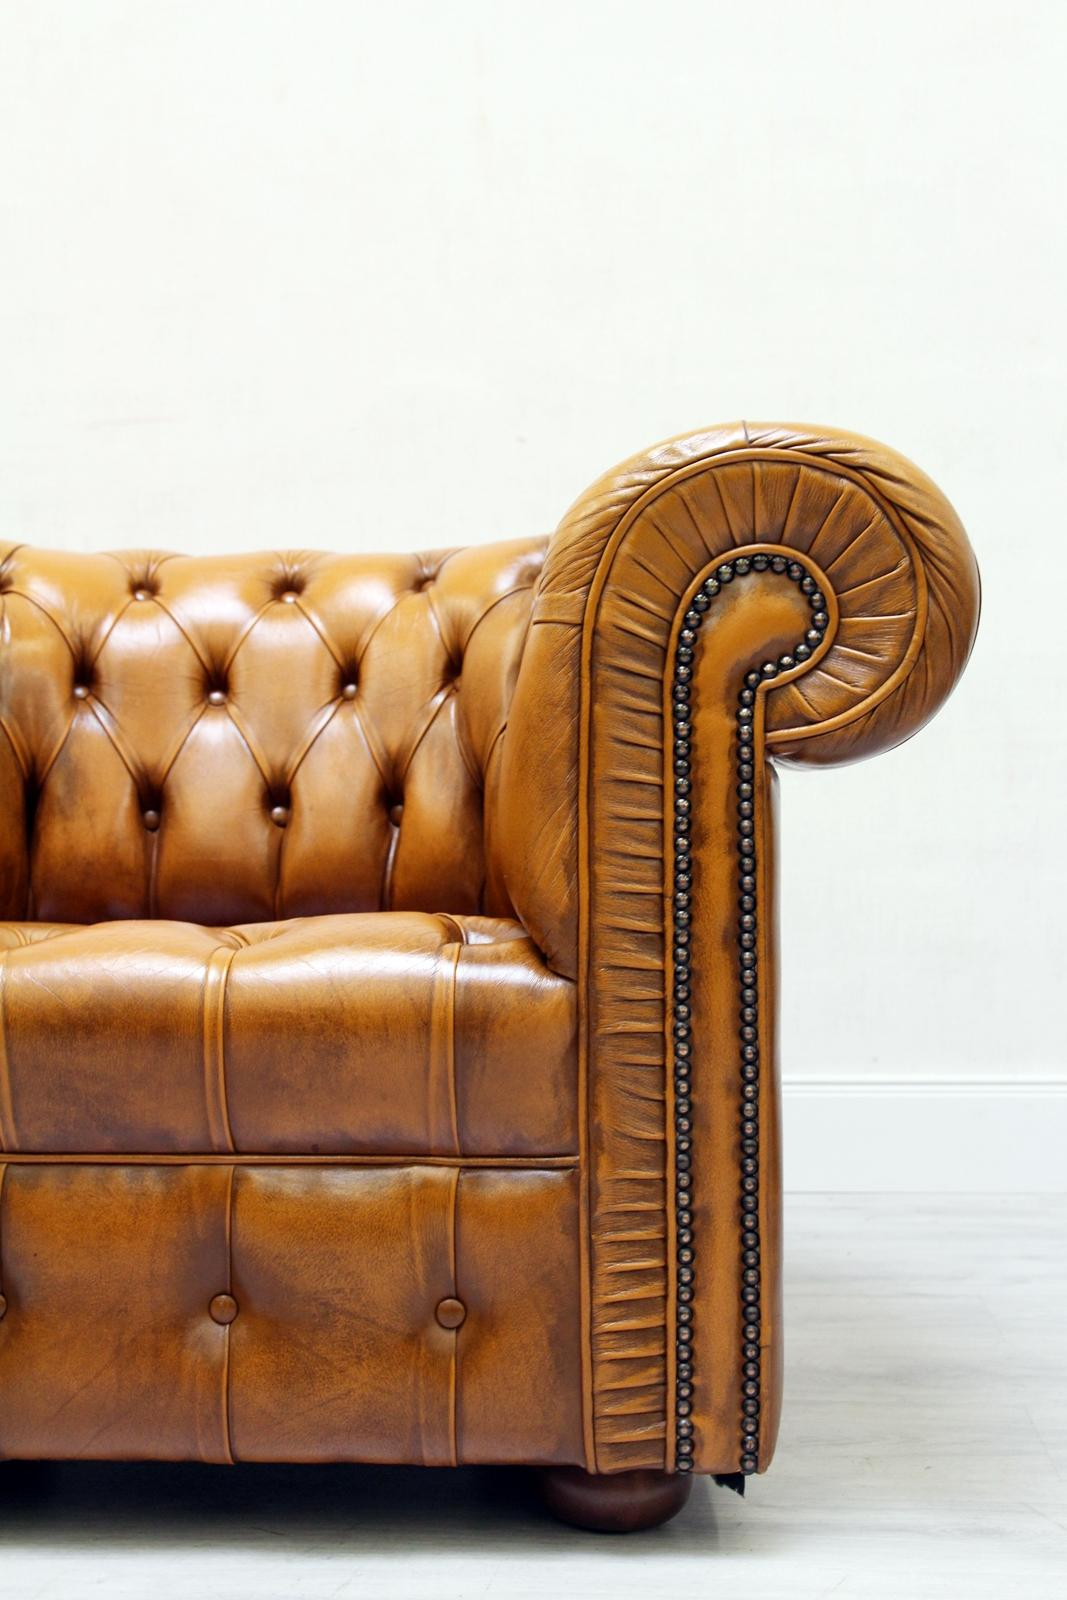 Retro Sessel Sale Chesterfield Ledersessel Antik Vintage Englisch Sessel